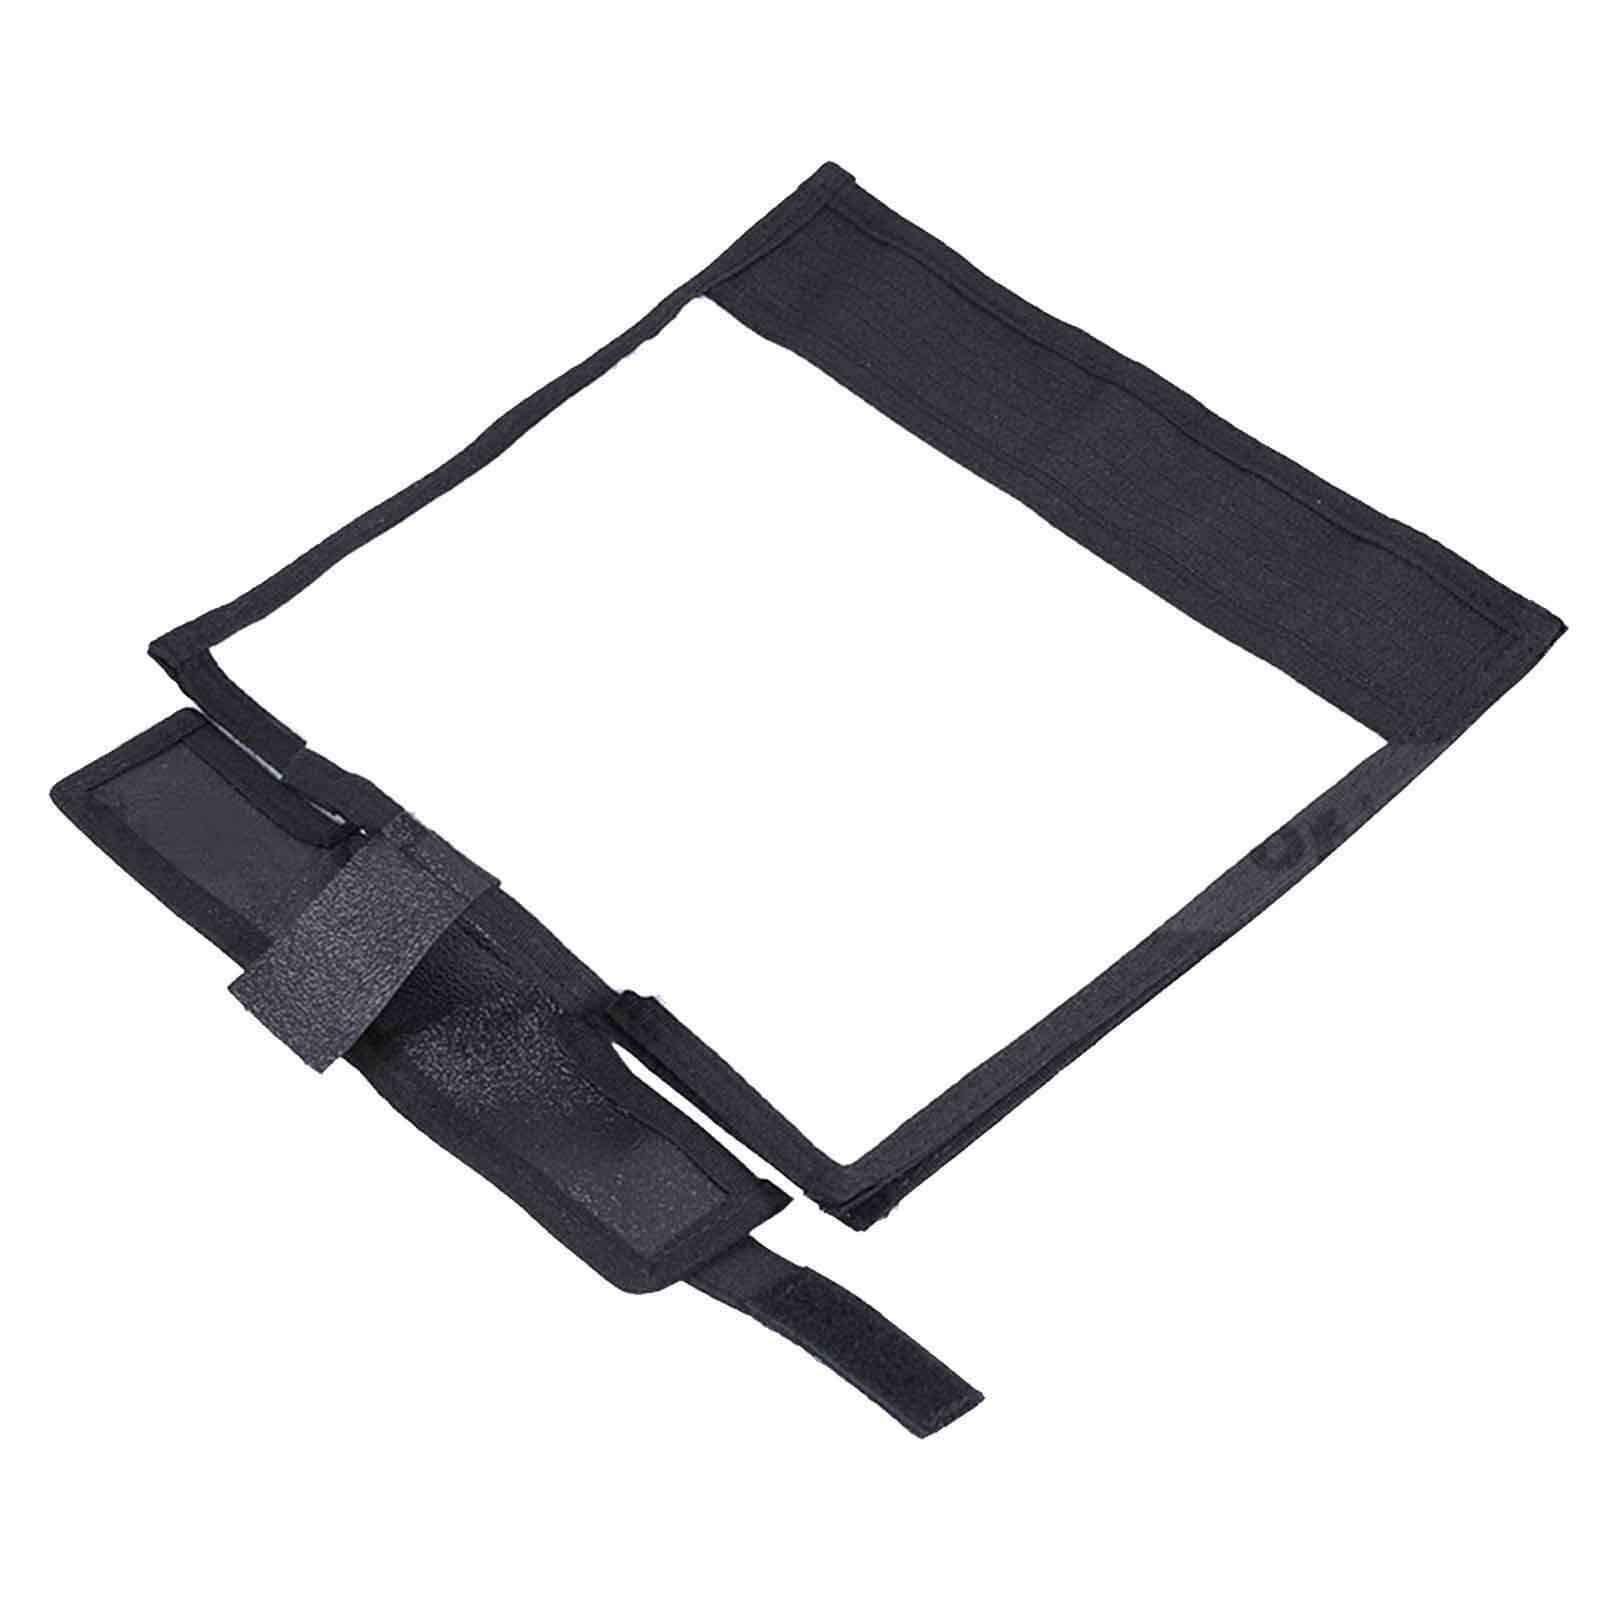 Foldable Reflector/Snoot Reflective Flash Diffuser Softbox for Canon Pentax